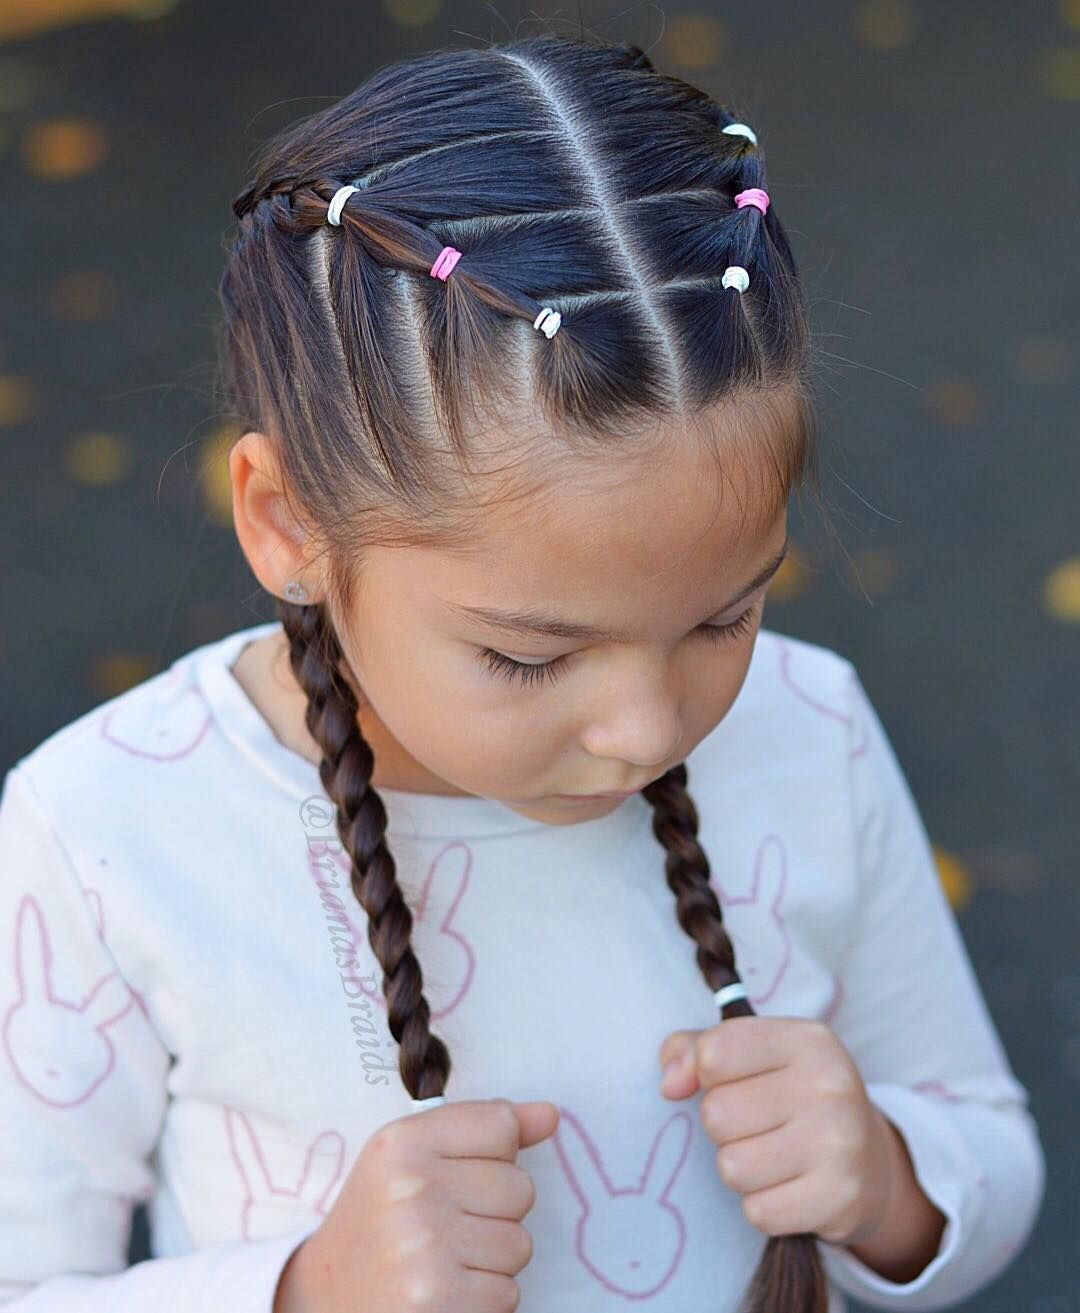 Mariya On Instagram Elastics And French Braids For School And Gymnastics Have A Great Wednesday Hair Styles Lil Girl Hairstyles Kids Hairstyles Girls